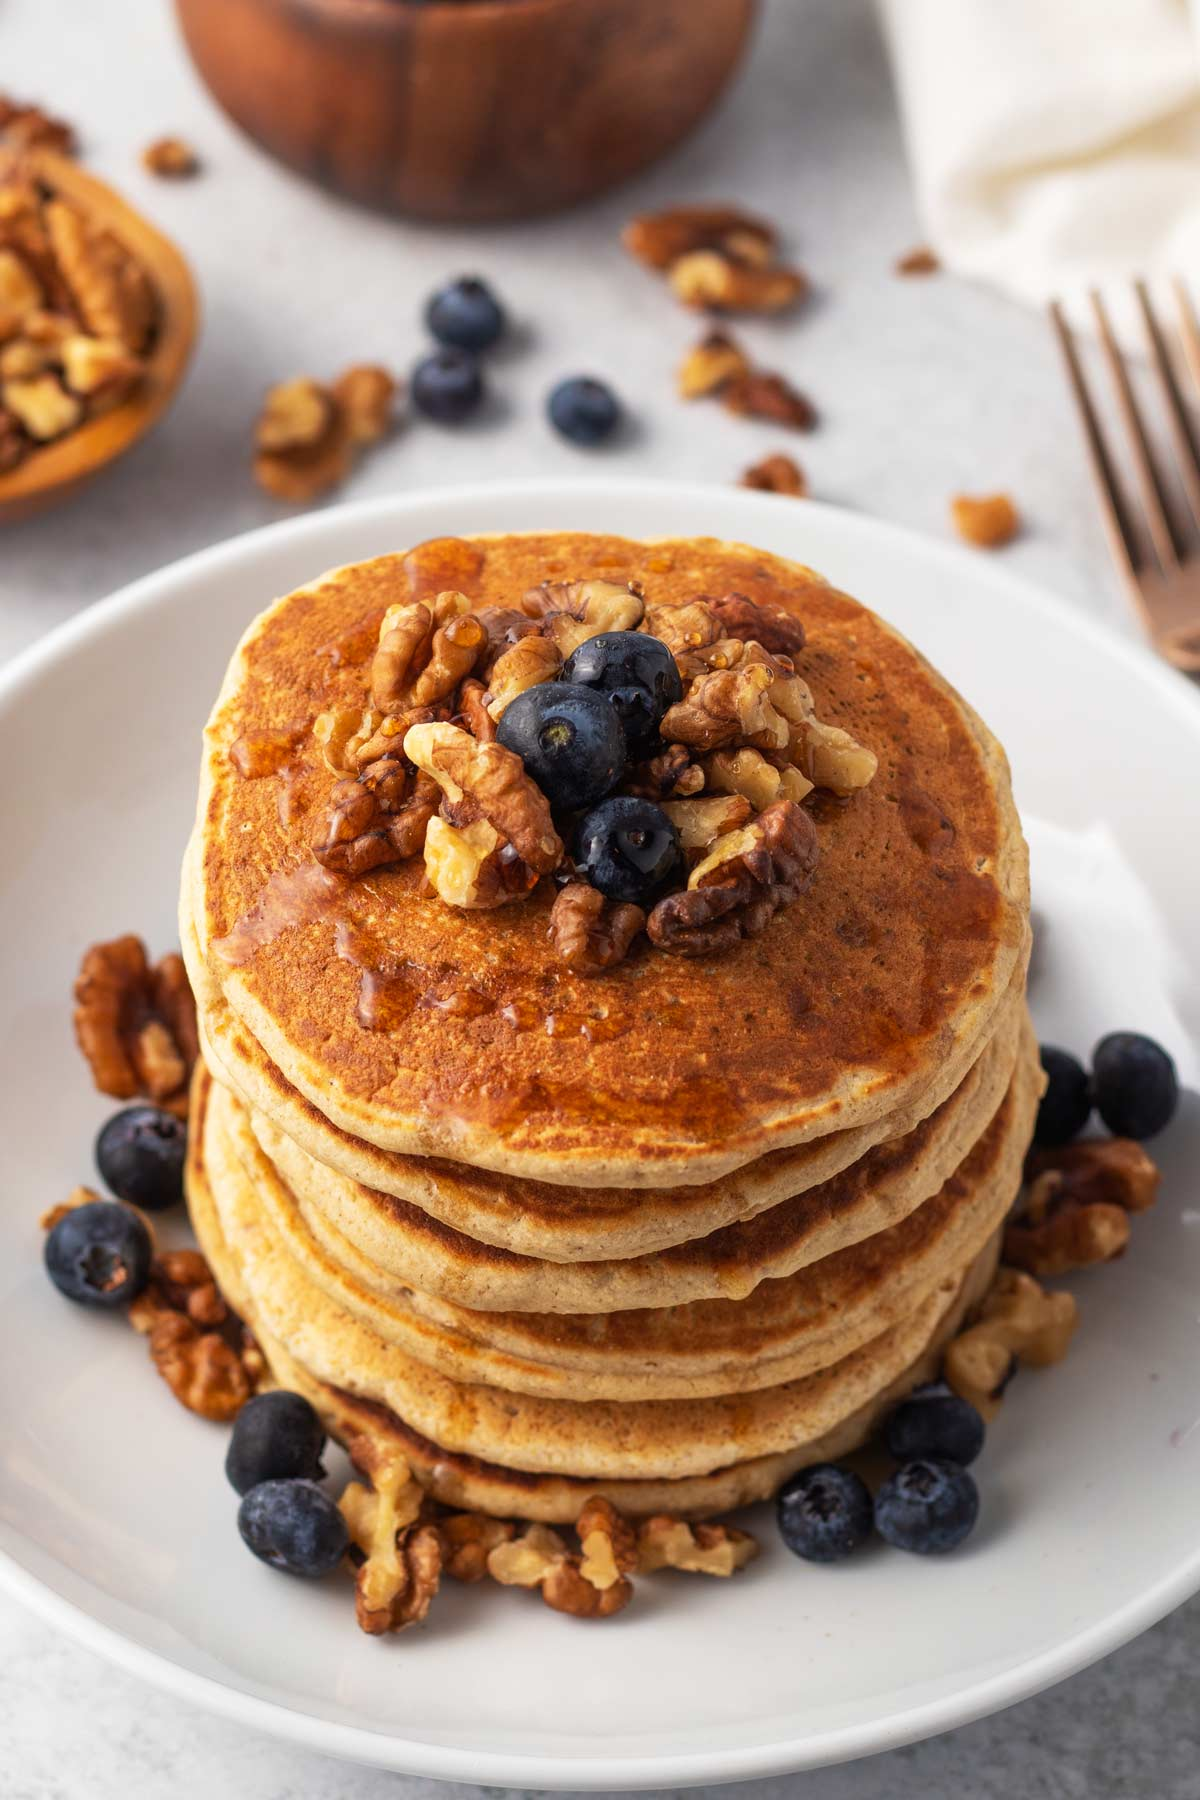 stack of gluten-free pancakes with blueberries walnuts and maple syrup on top.